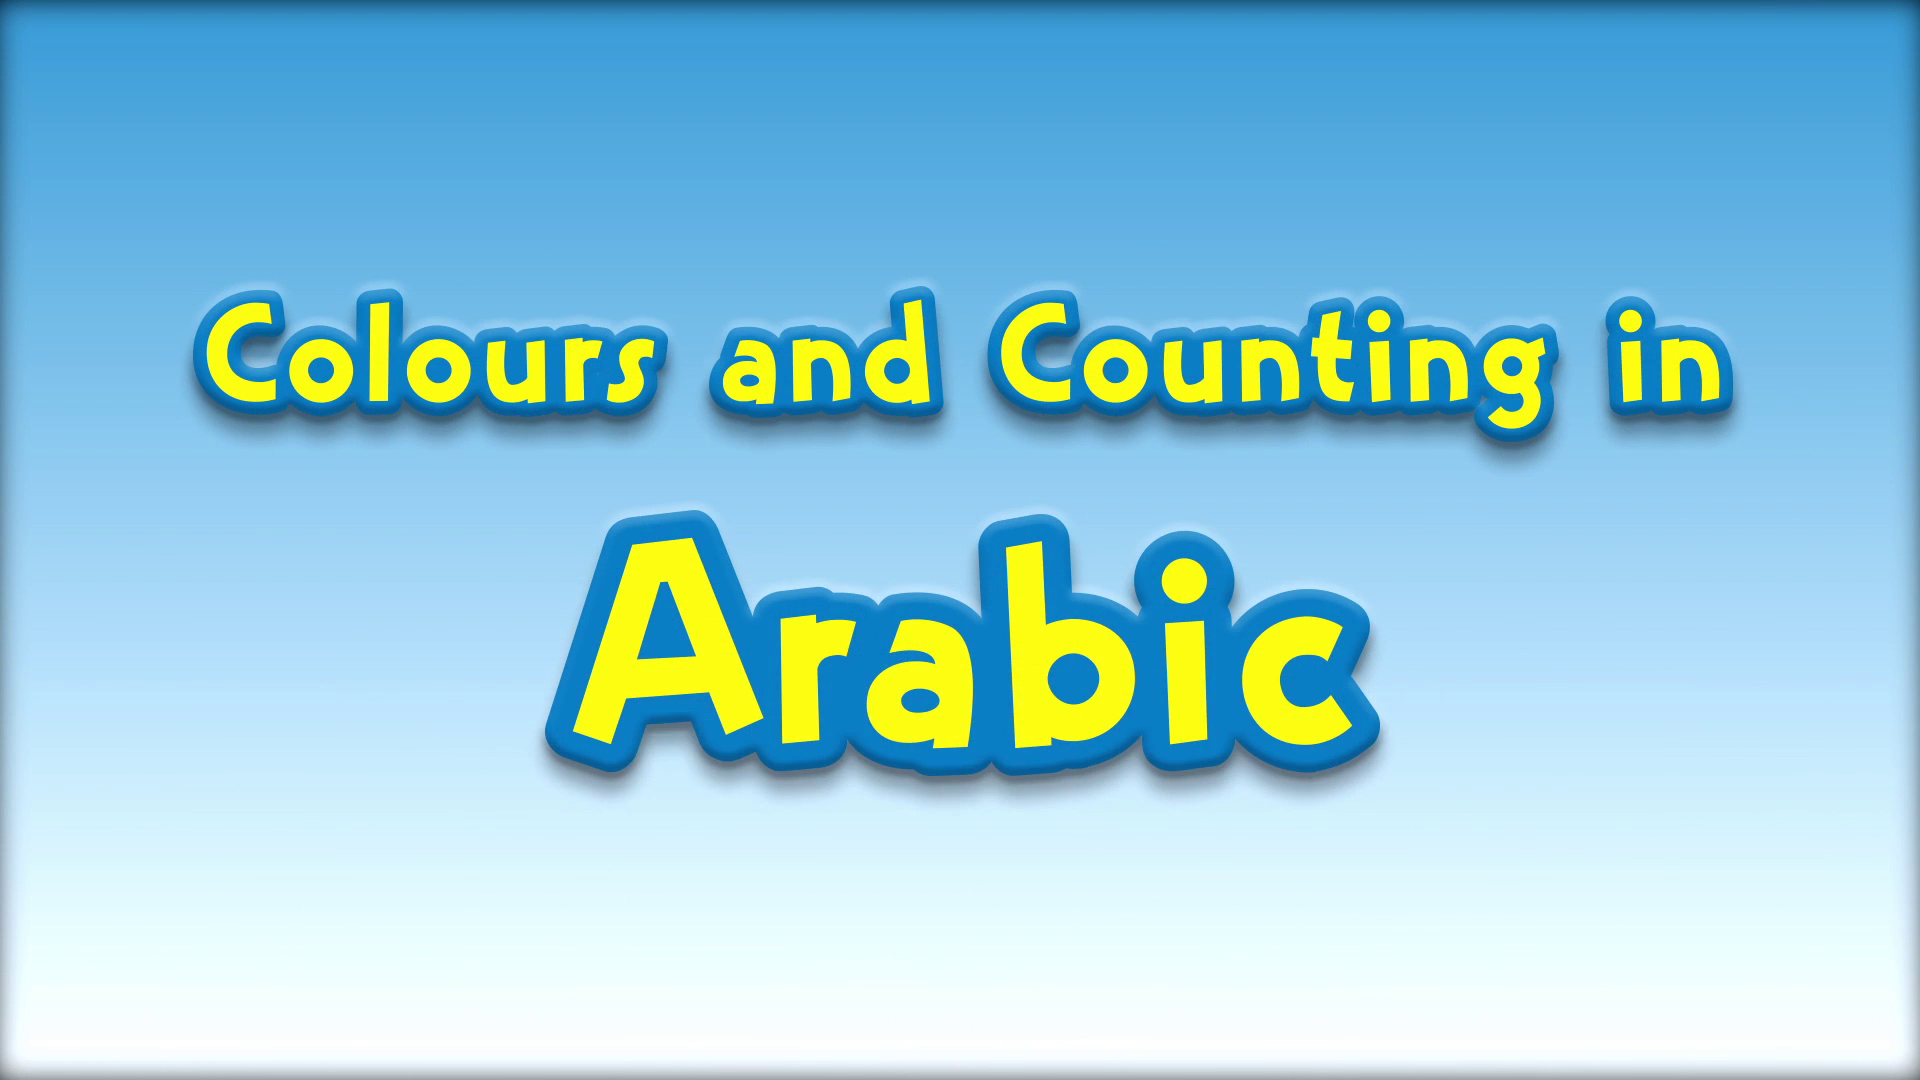 Colours and Counting in Arabic